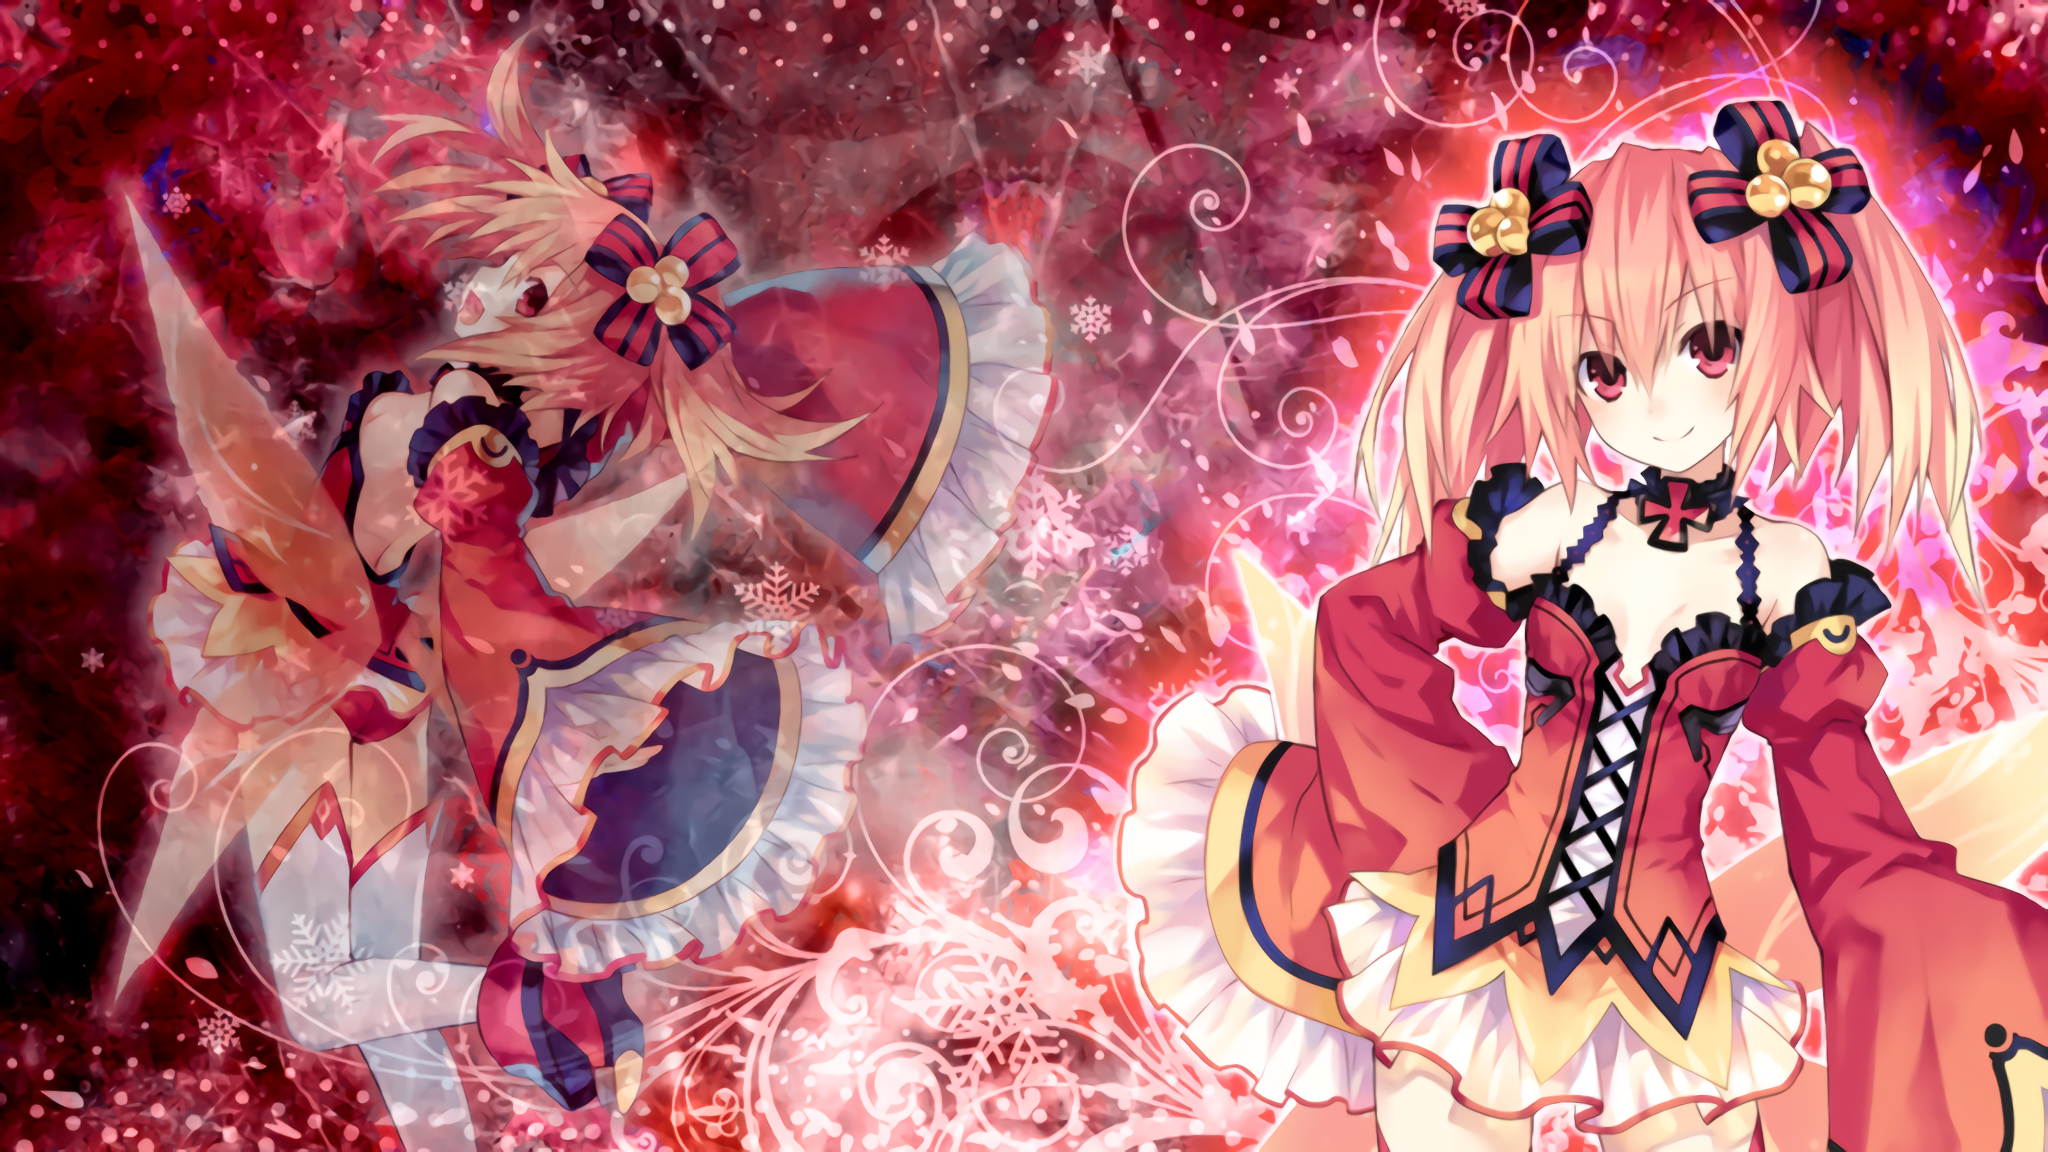 Fairy fencer f hd wallpaper background image 2048x1152 - Anime background for youtube ...